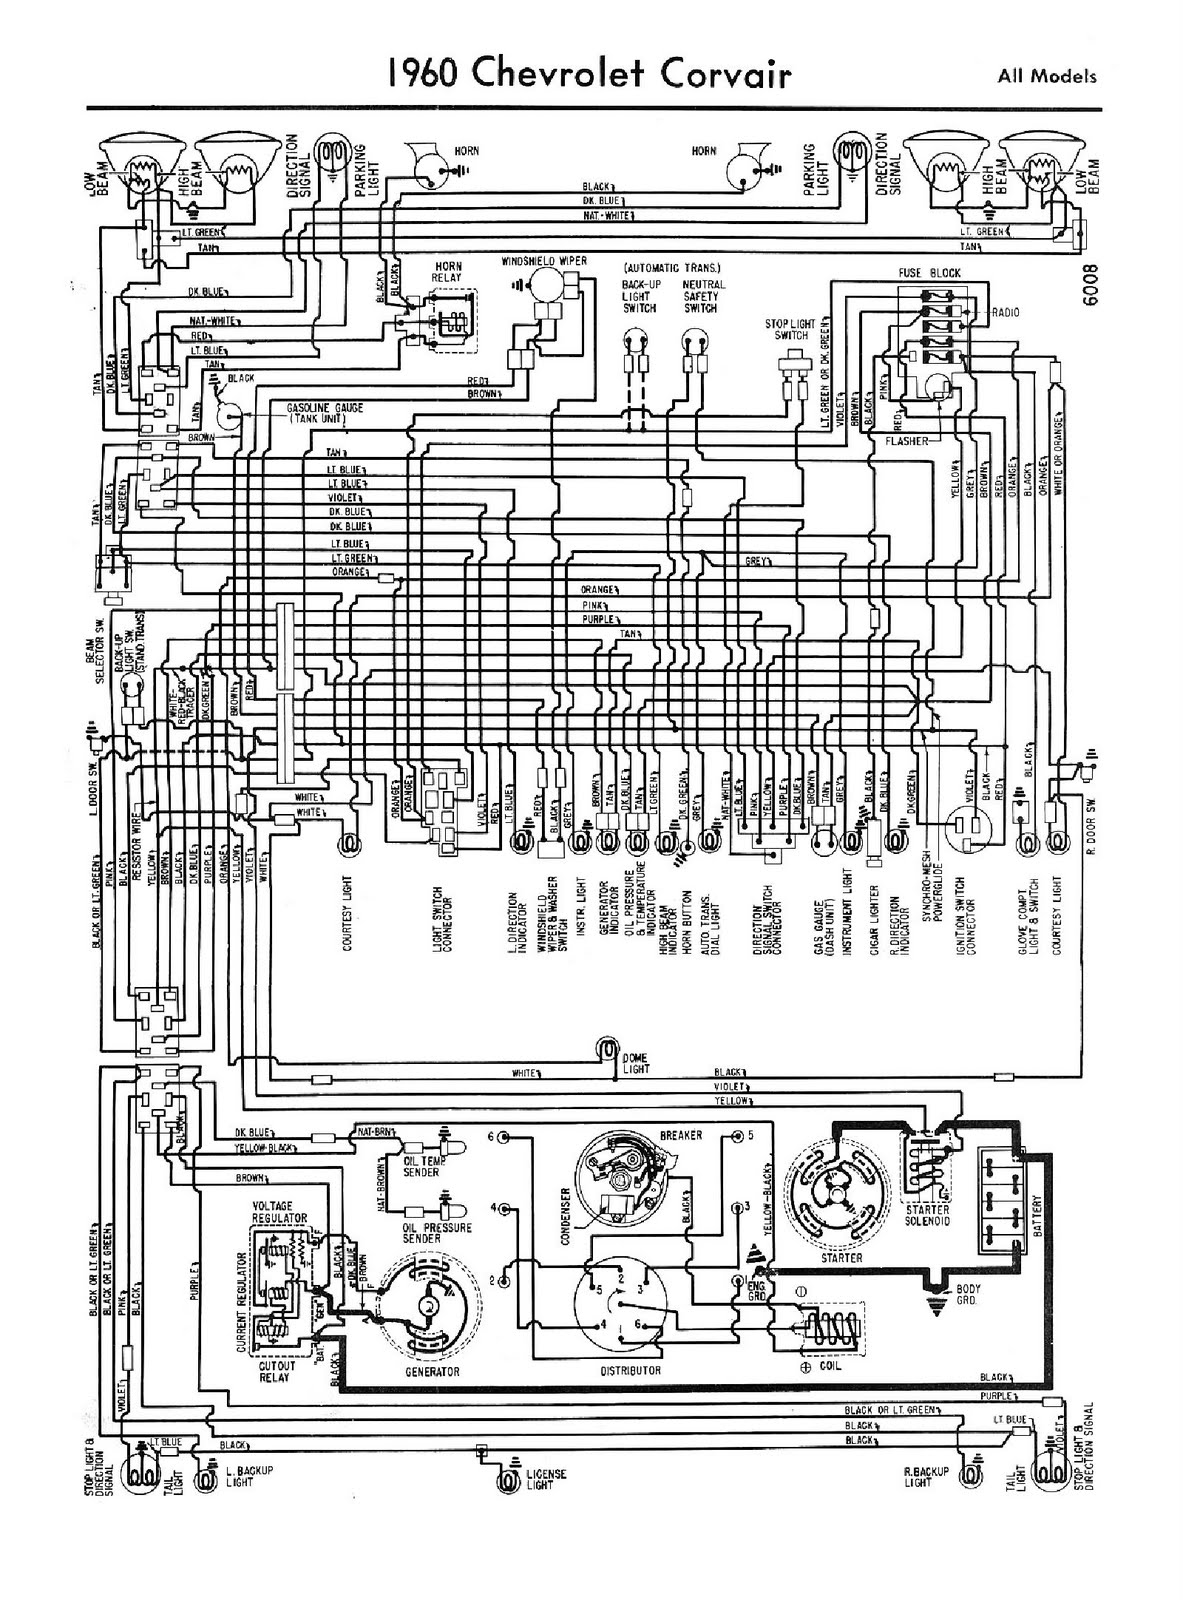 1960 Impala Wiring Diagram Free For You Electrical Chevrolet Corvair All Models Auto Chevy